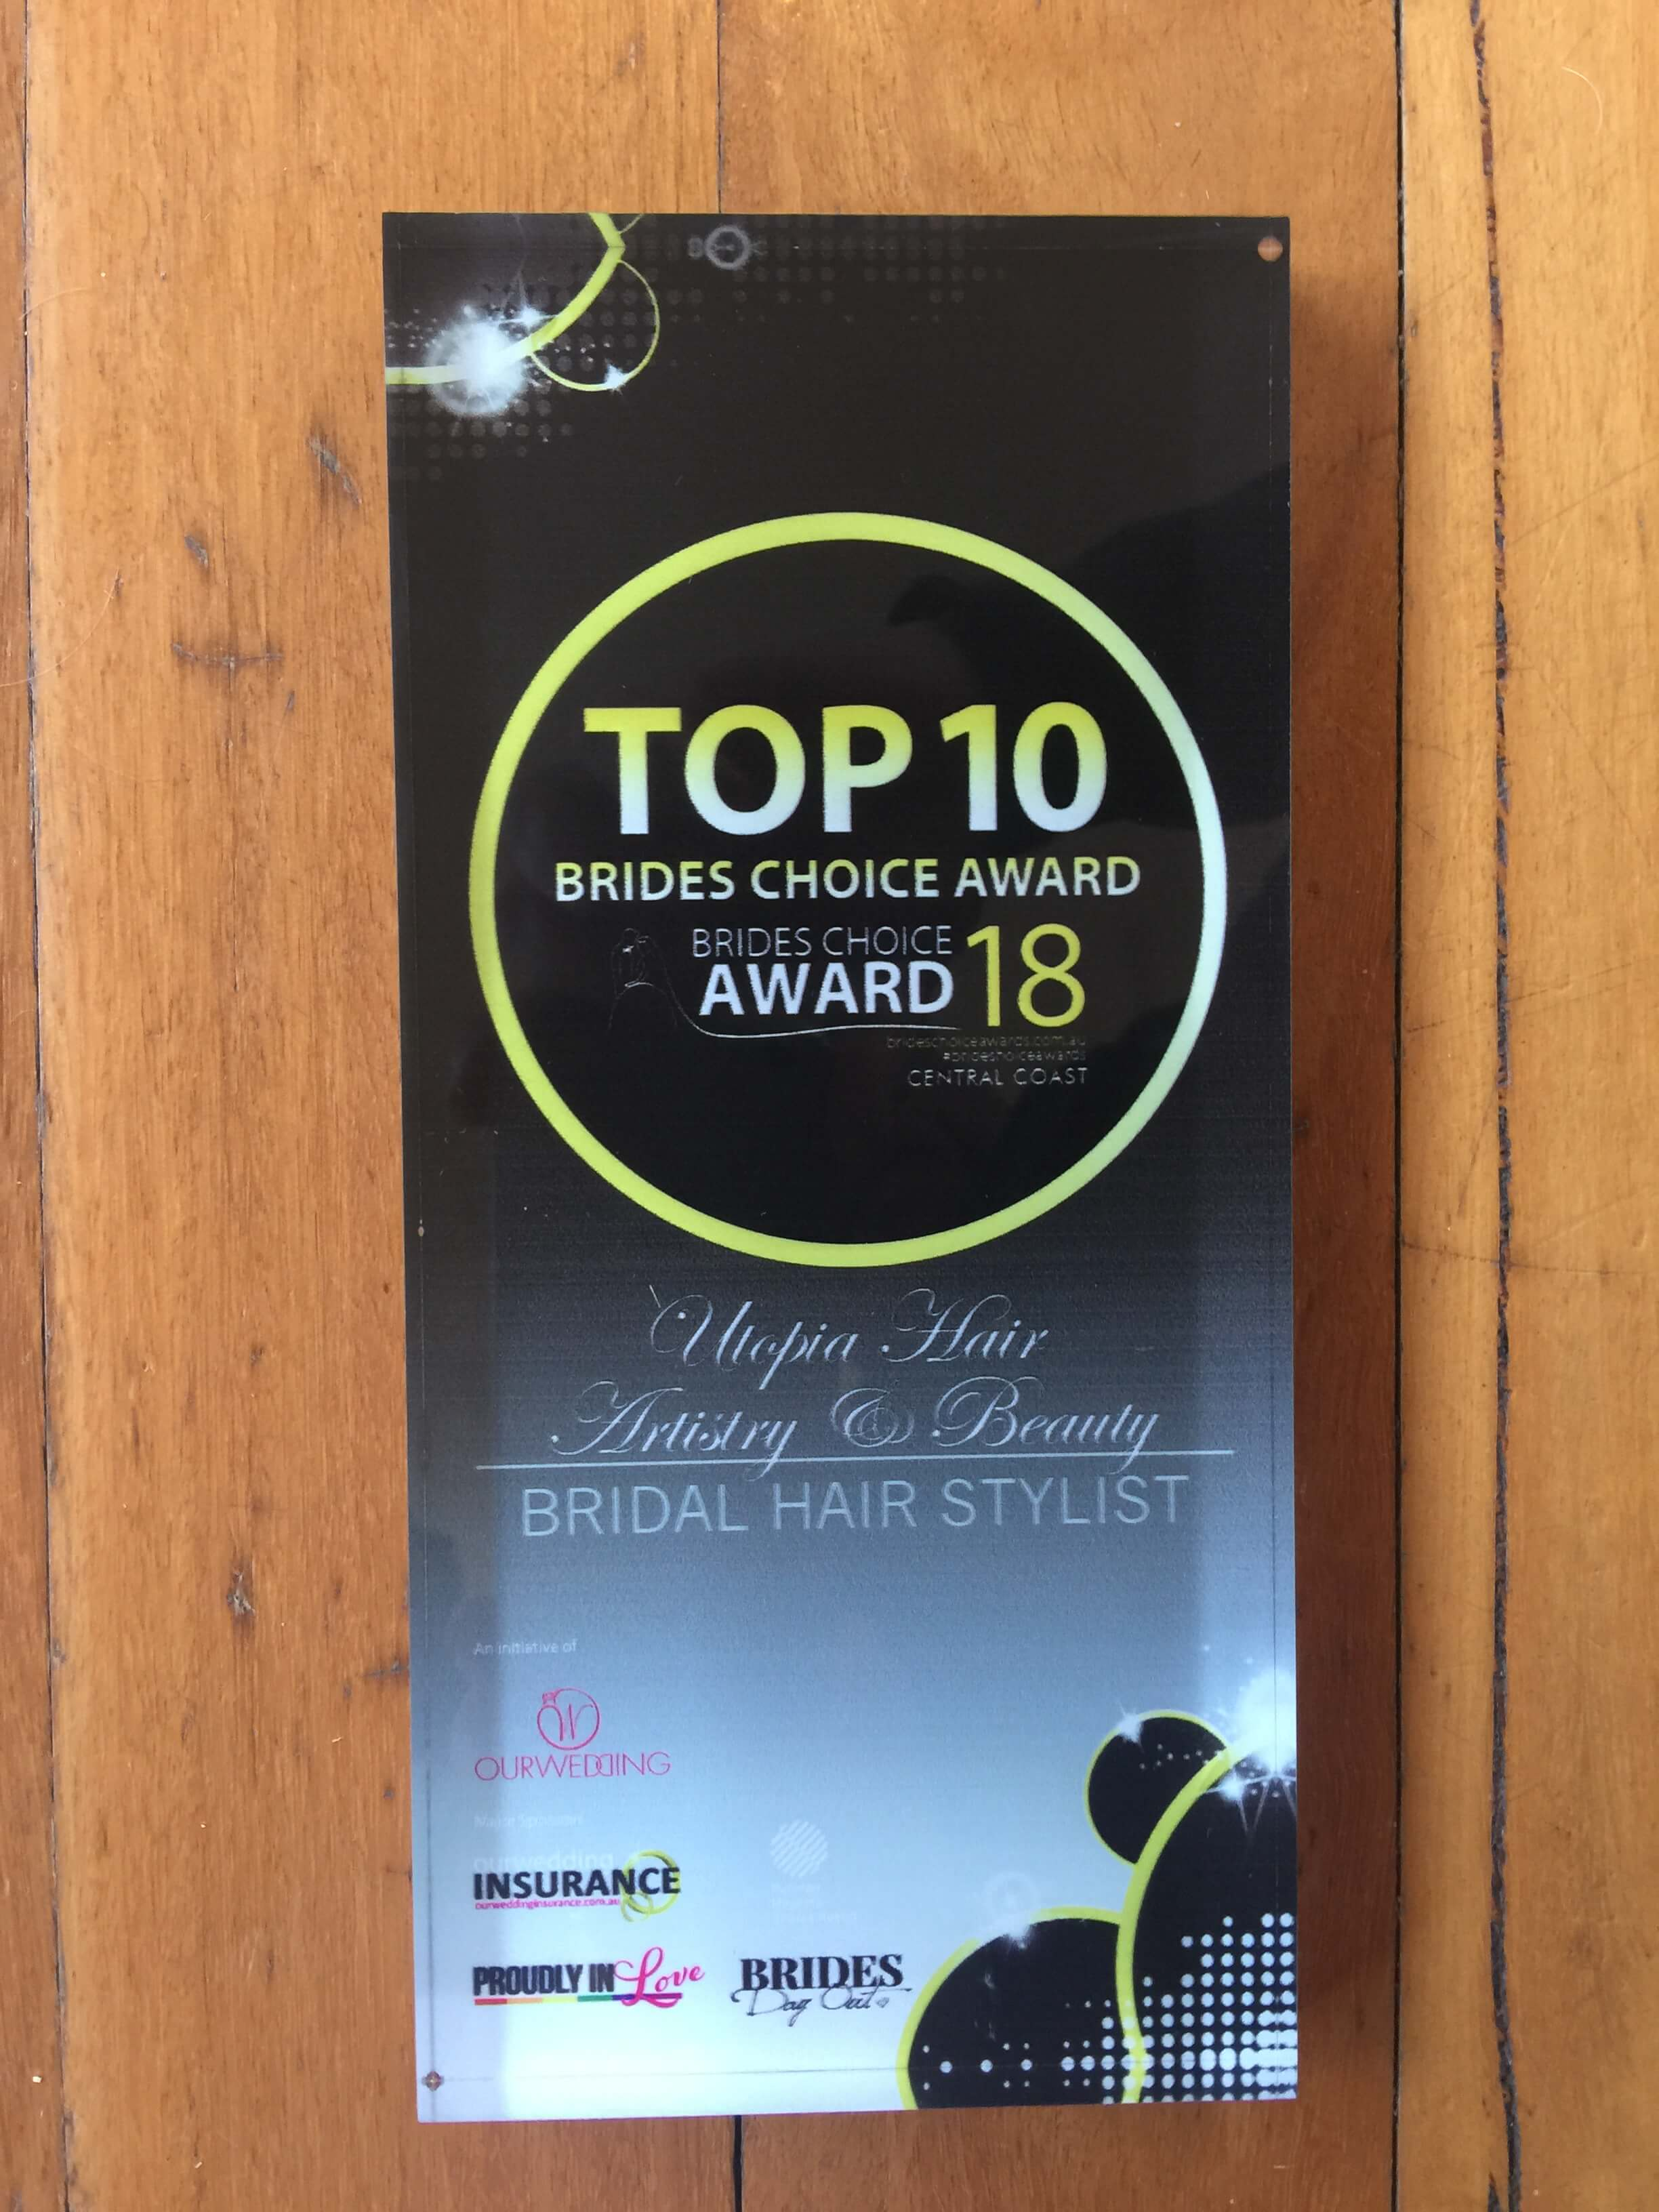 Utopia Hair Artistry and Beauty - Top 10 Bride Choice Award 2018